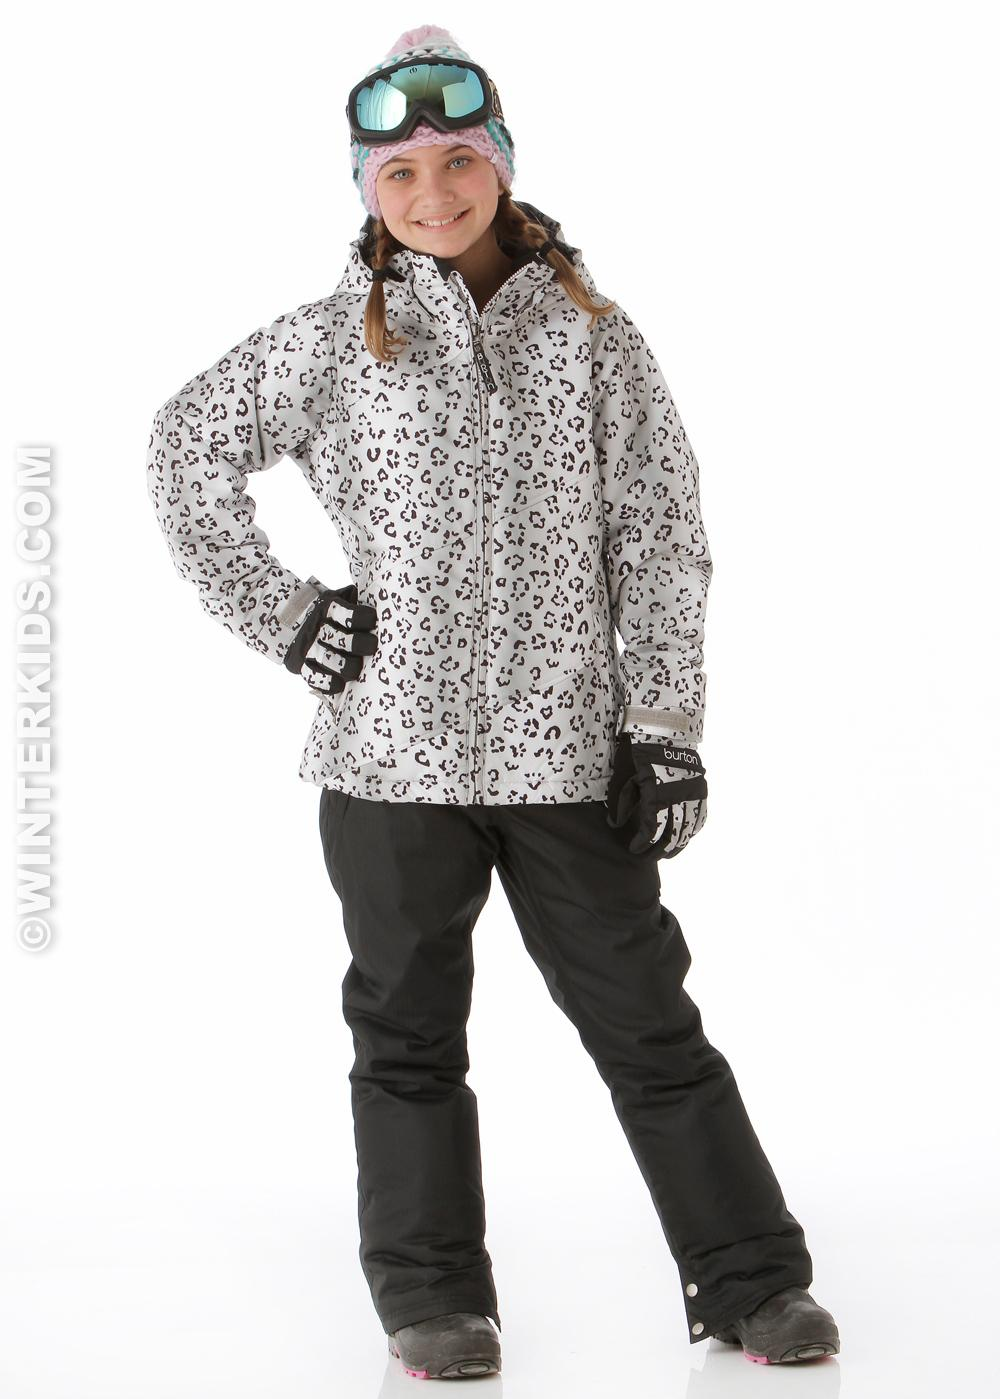 Ski Fashion 2012 2013 Winter Styles for Cool Kids | The